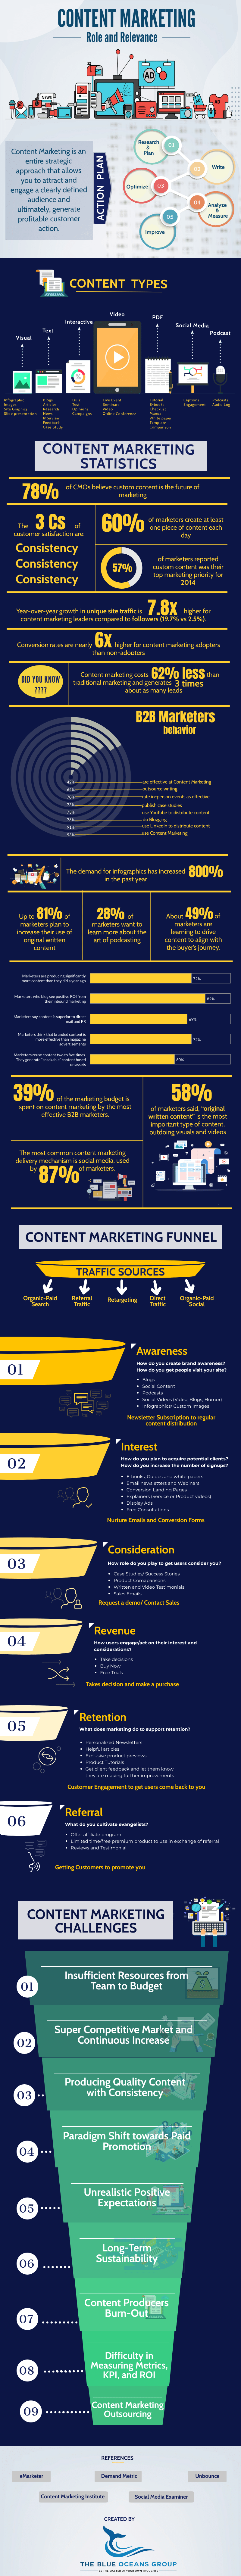 Content Marketing Action Plan Statistics and Challenges - %title%- The Blue Oceans Group